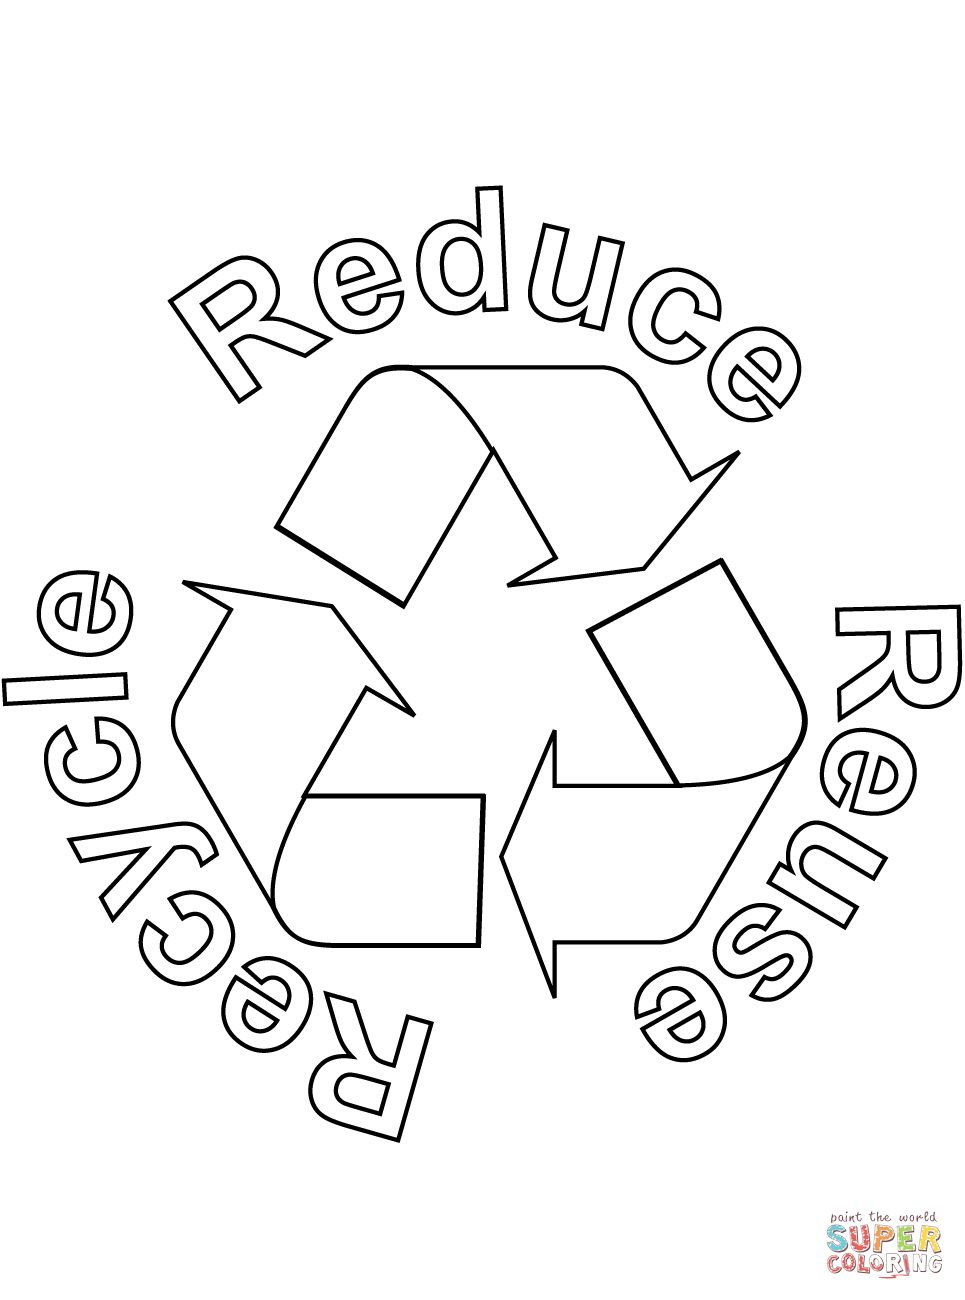 Click the reduce reuse recycle coloring pages to view printable